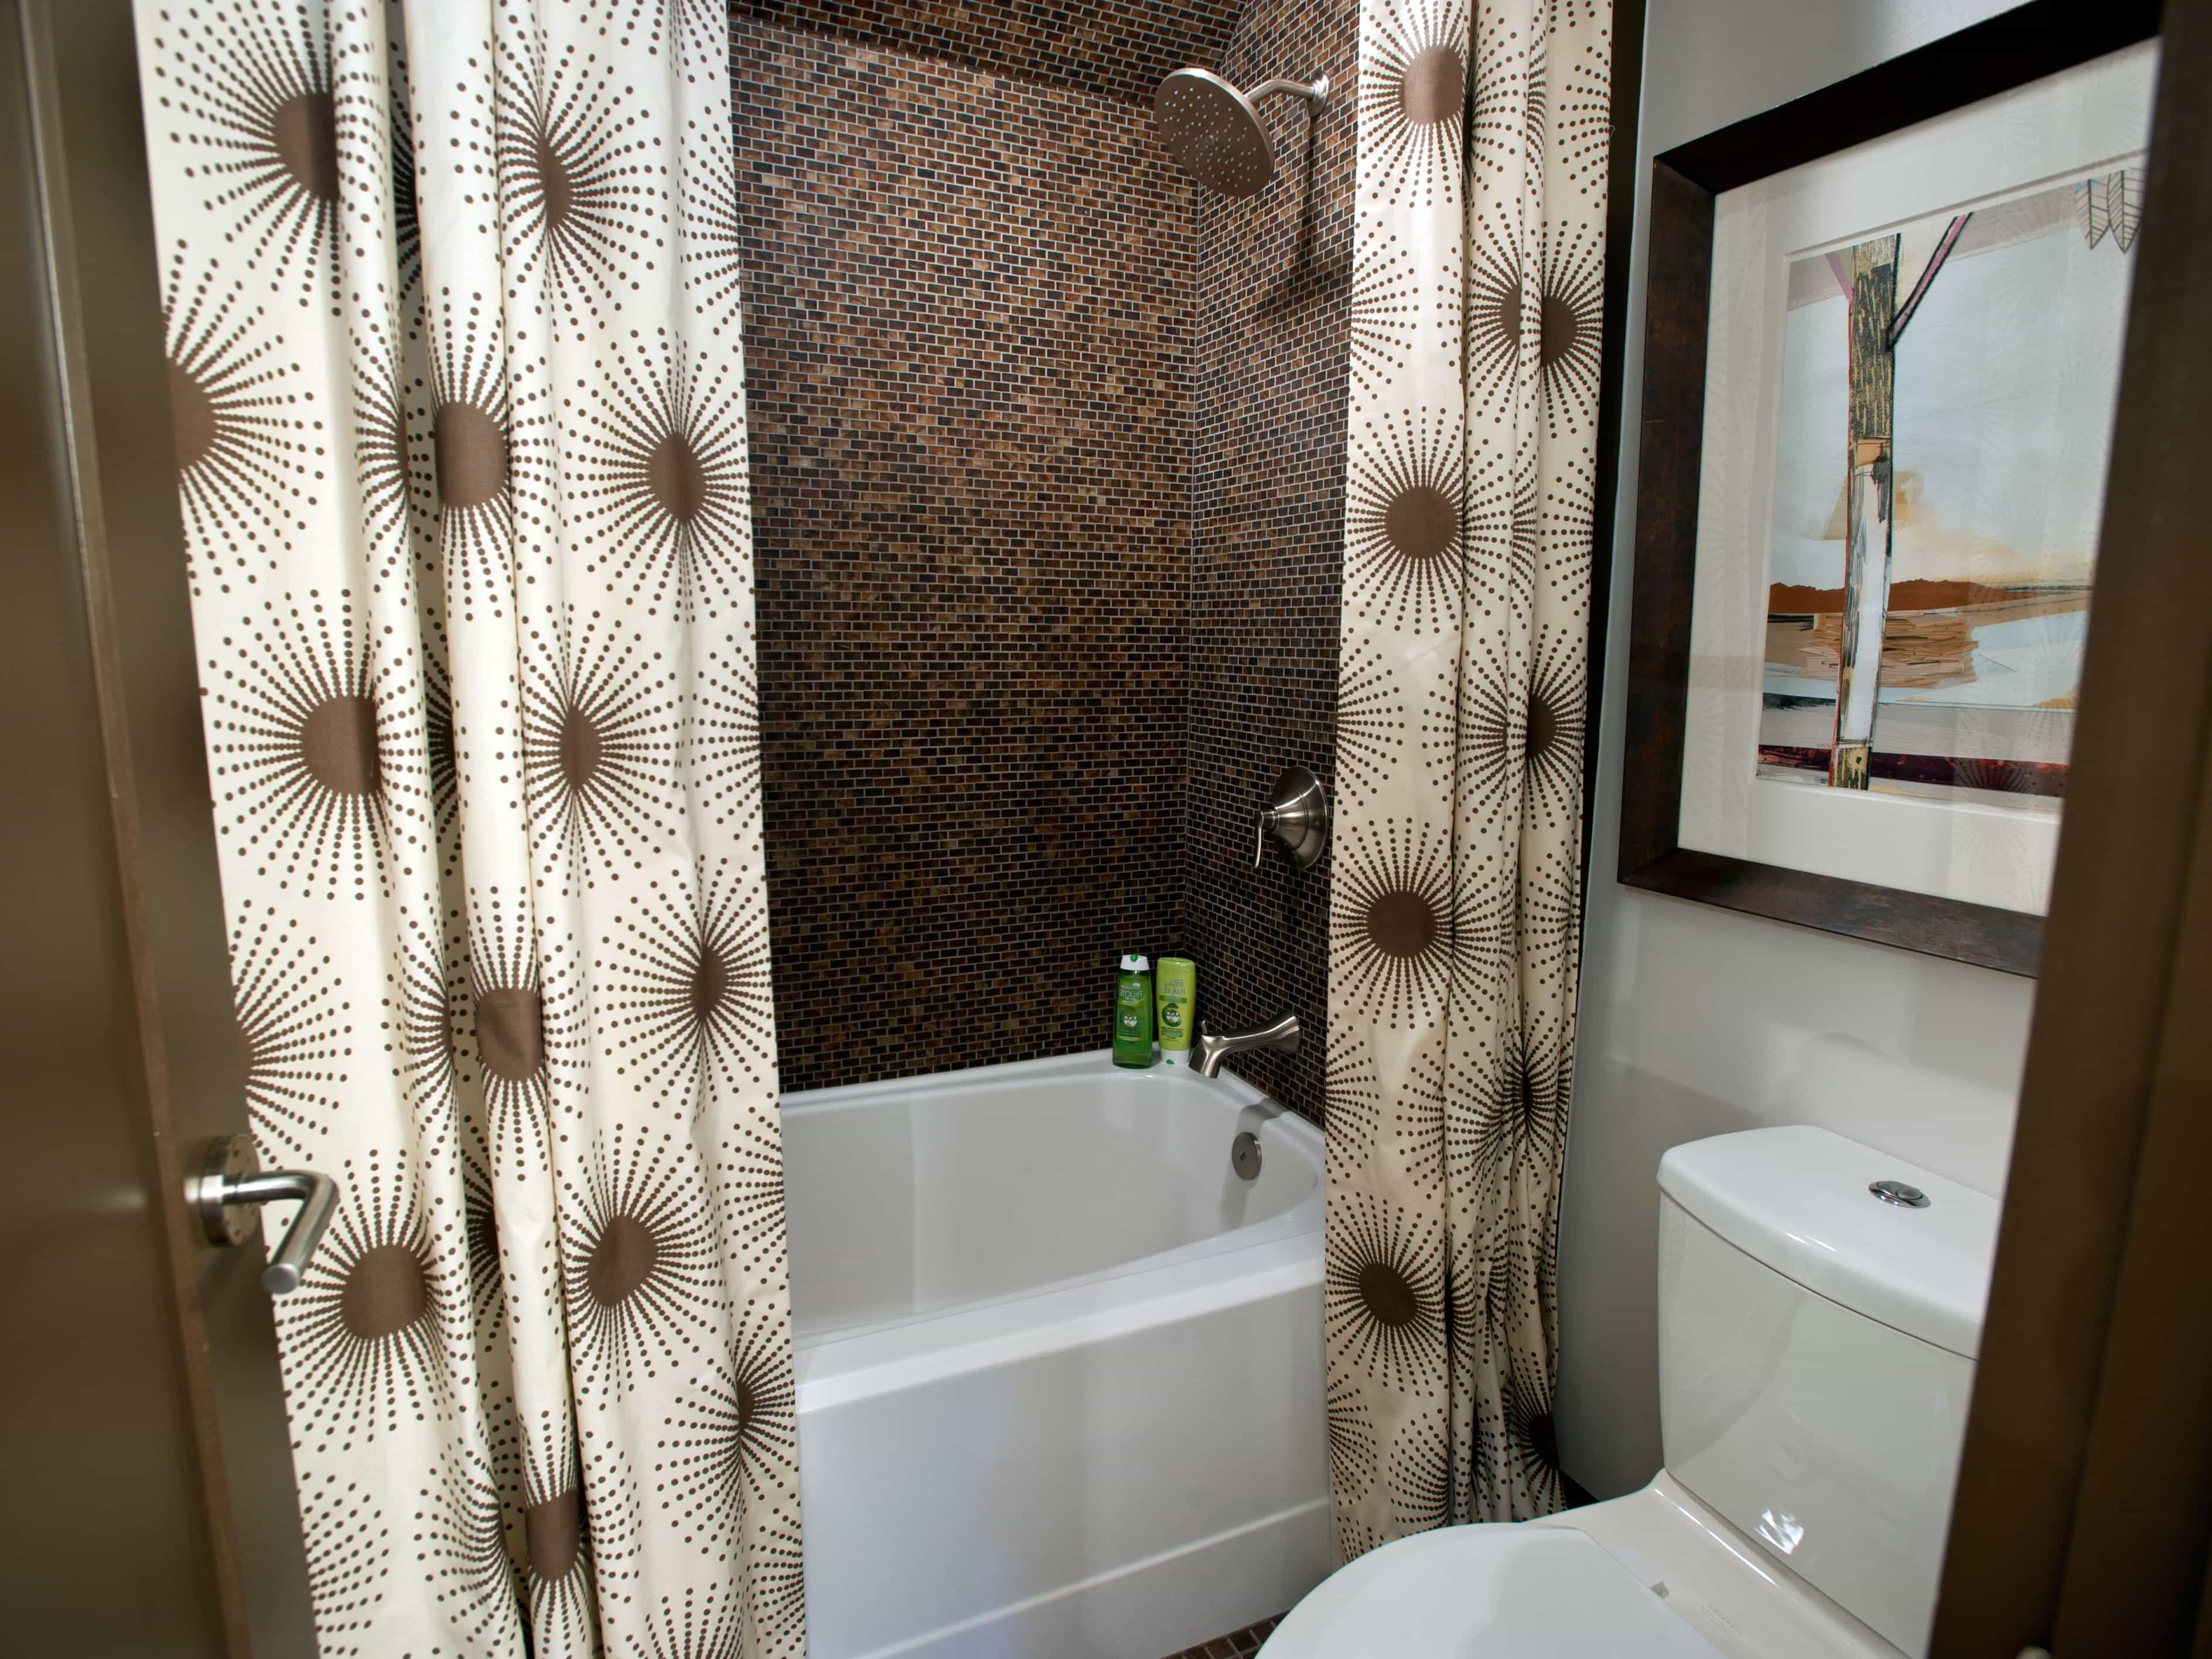 Contemporary Bathroom With Brown Floral Curtain (View 2 of 14)